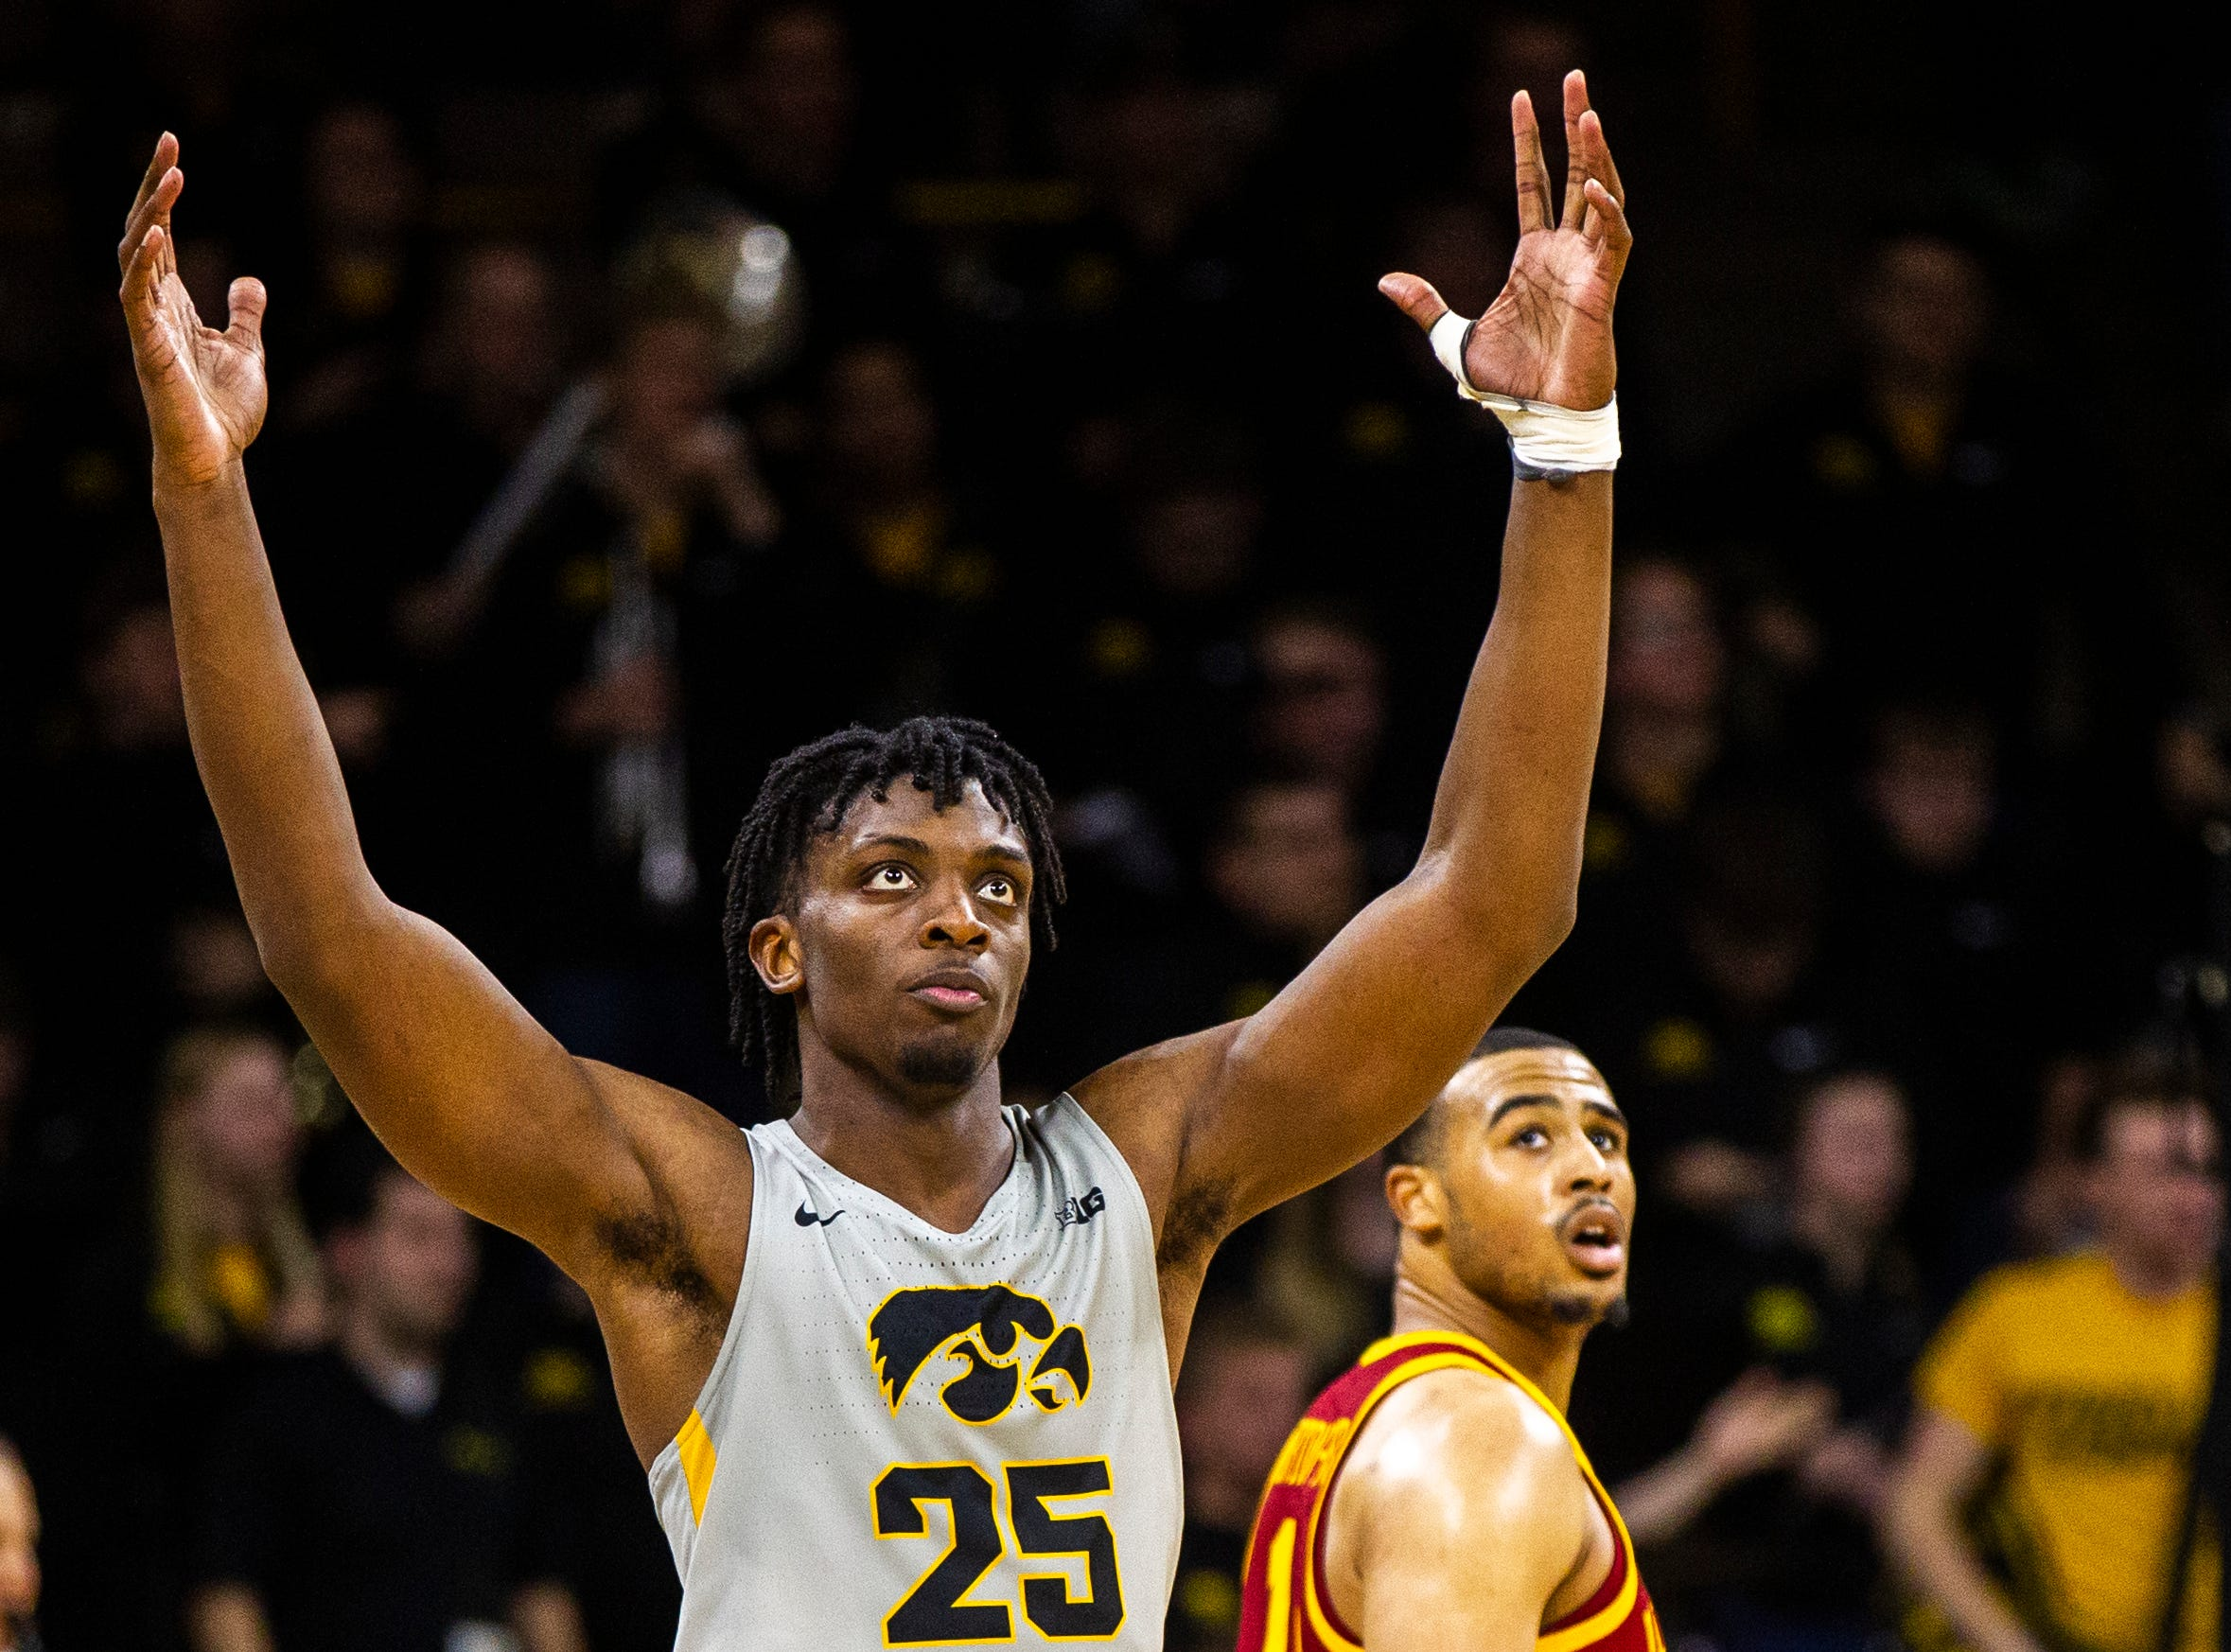 Cy-Hawk Basketball: Thoughts on Iowa's spirited victory over Iowa State and Tyler Cook's dominance